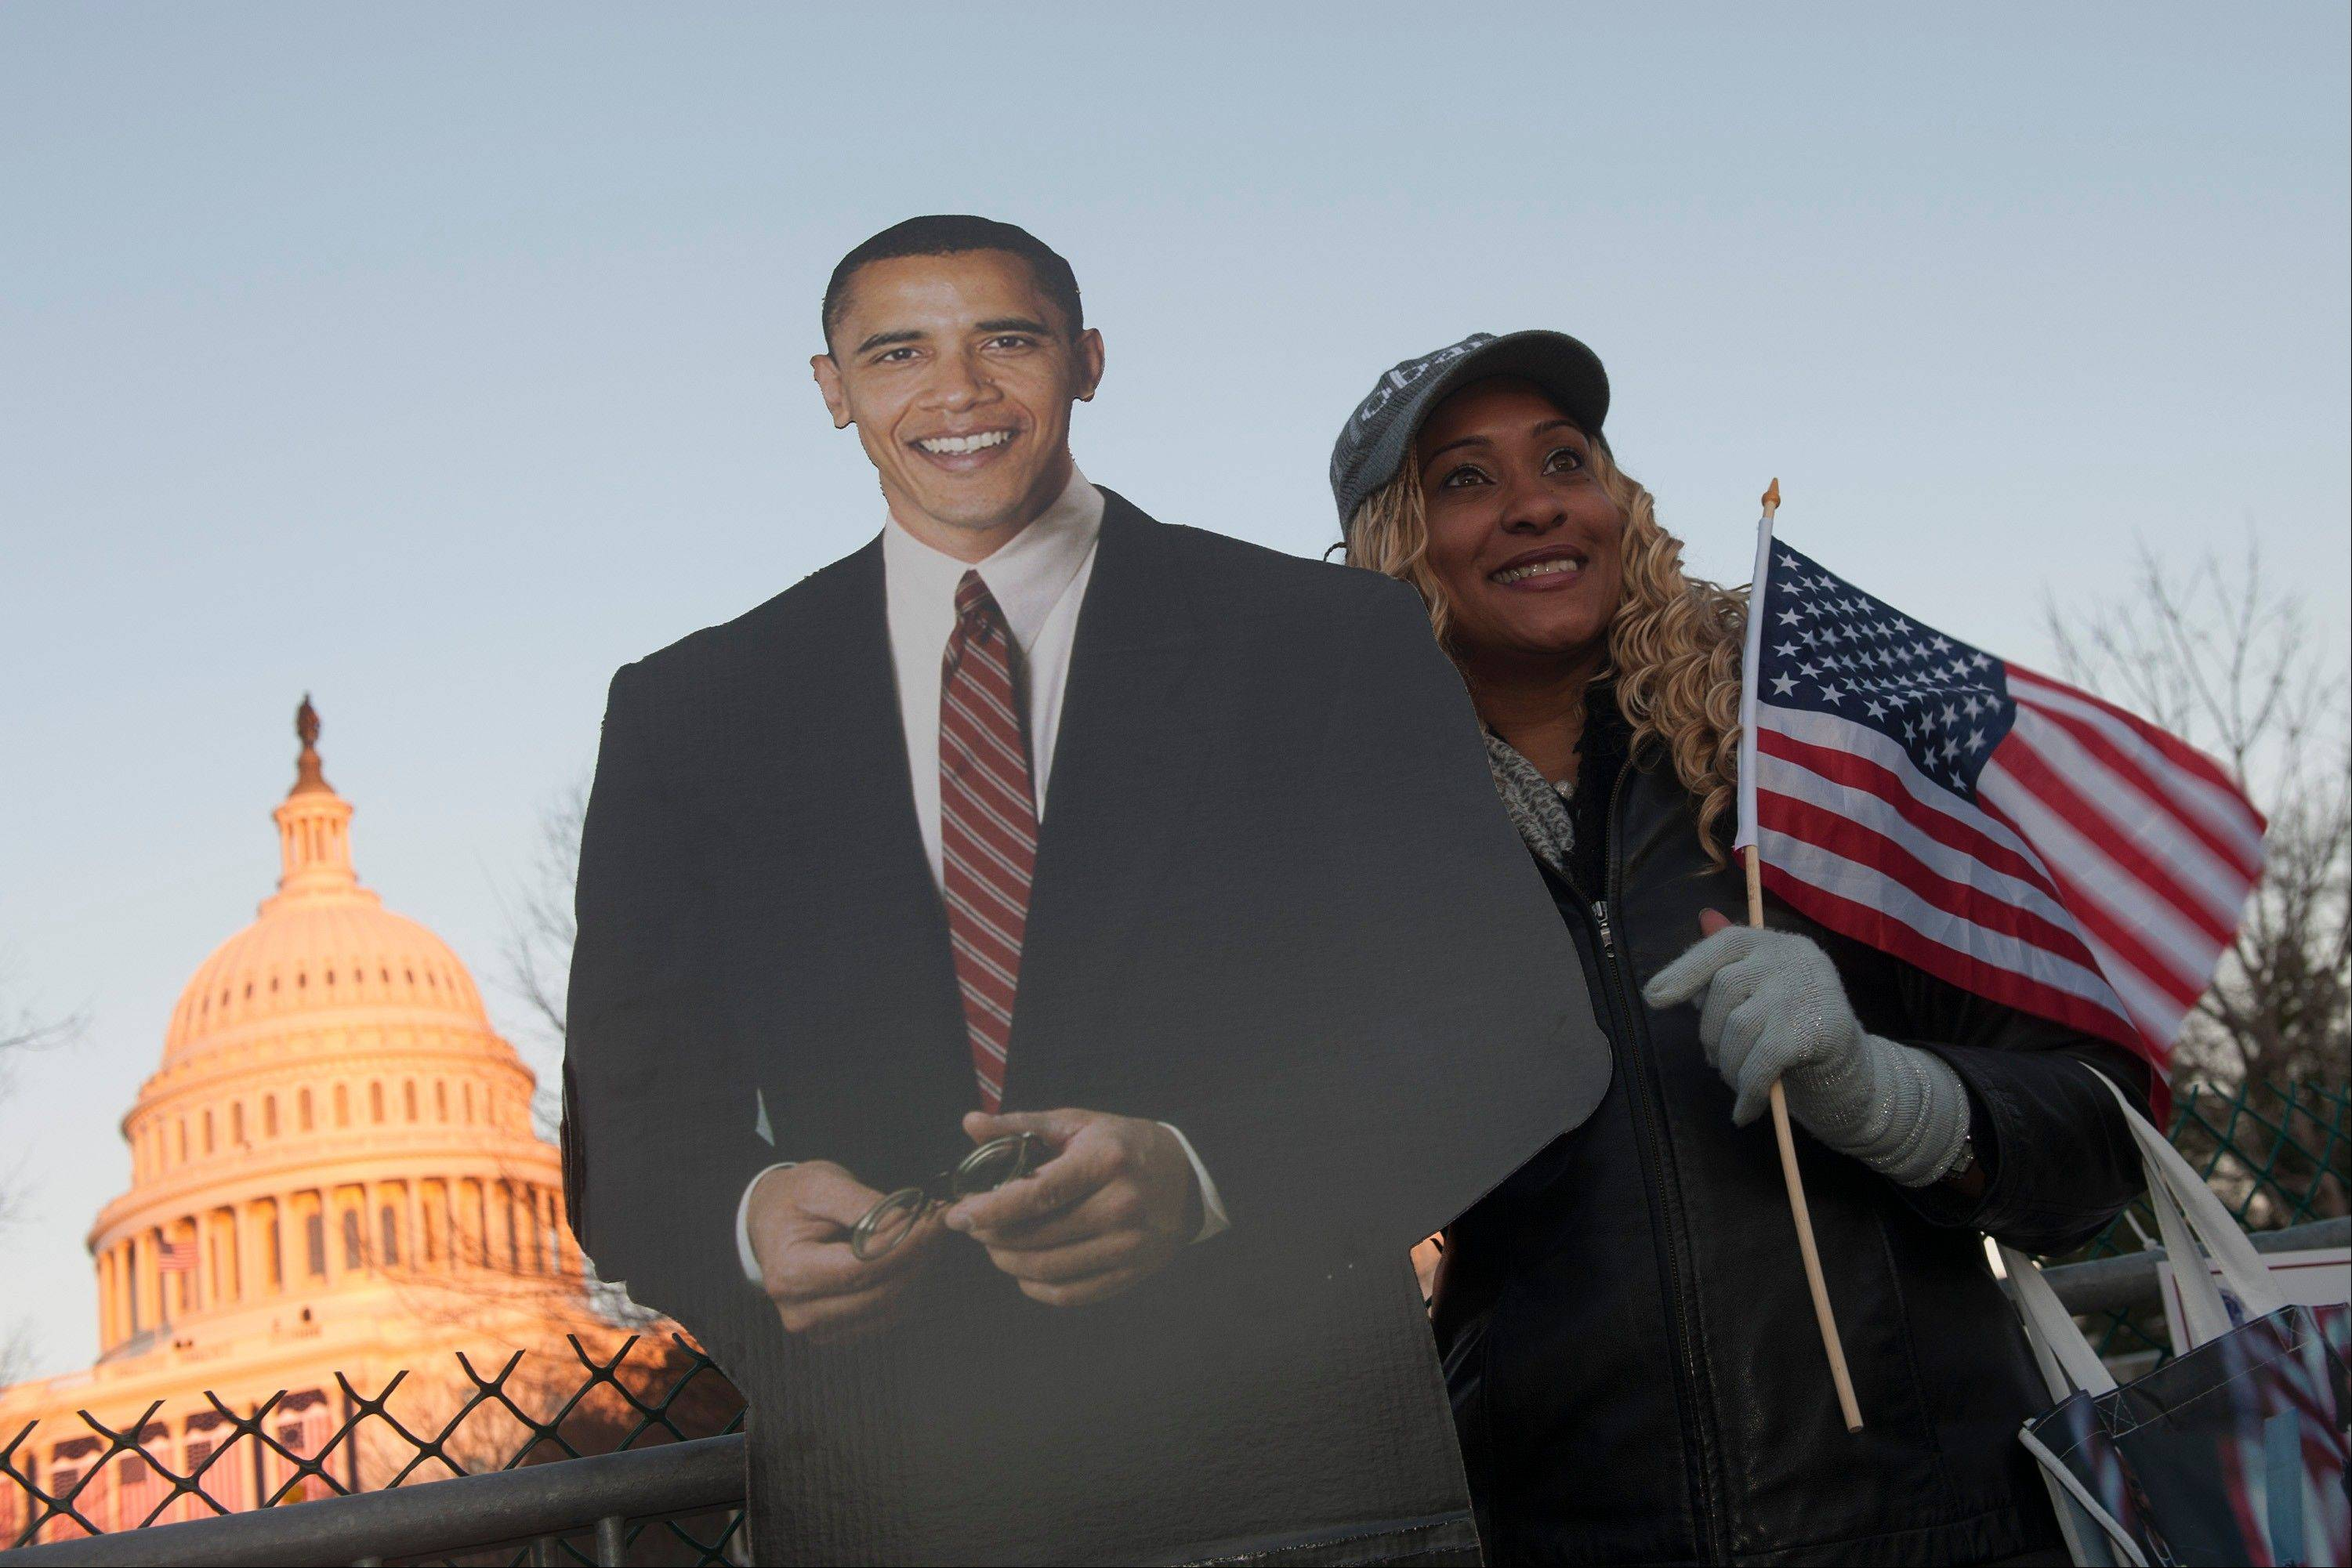 A woman holding a U.S. flag stands for a photograph with a cardboard cutout of President Barack Obama is displayed in front of the Capitol building ahead of the presidential inauguration in Washington, D.C., U.S., on Sunday, Jan. 20, 2013.